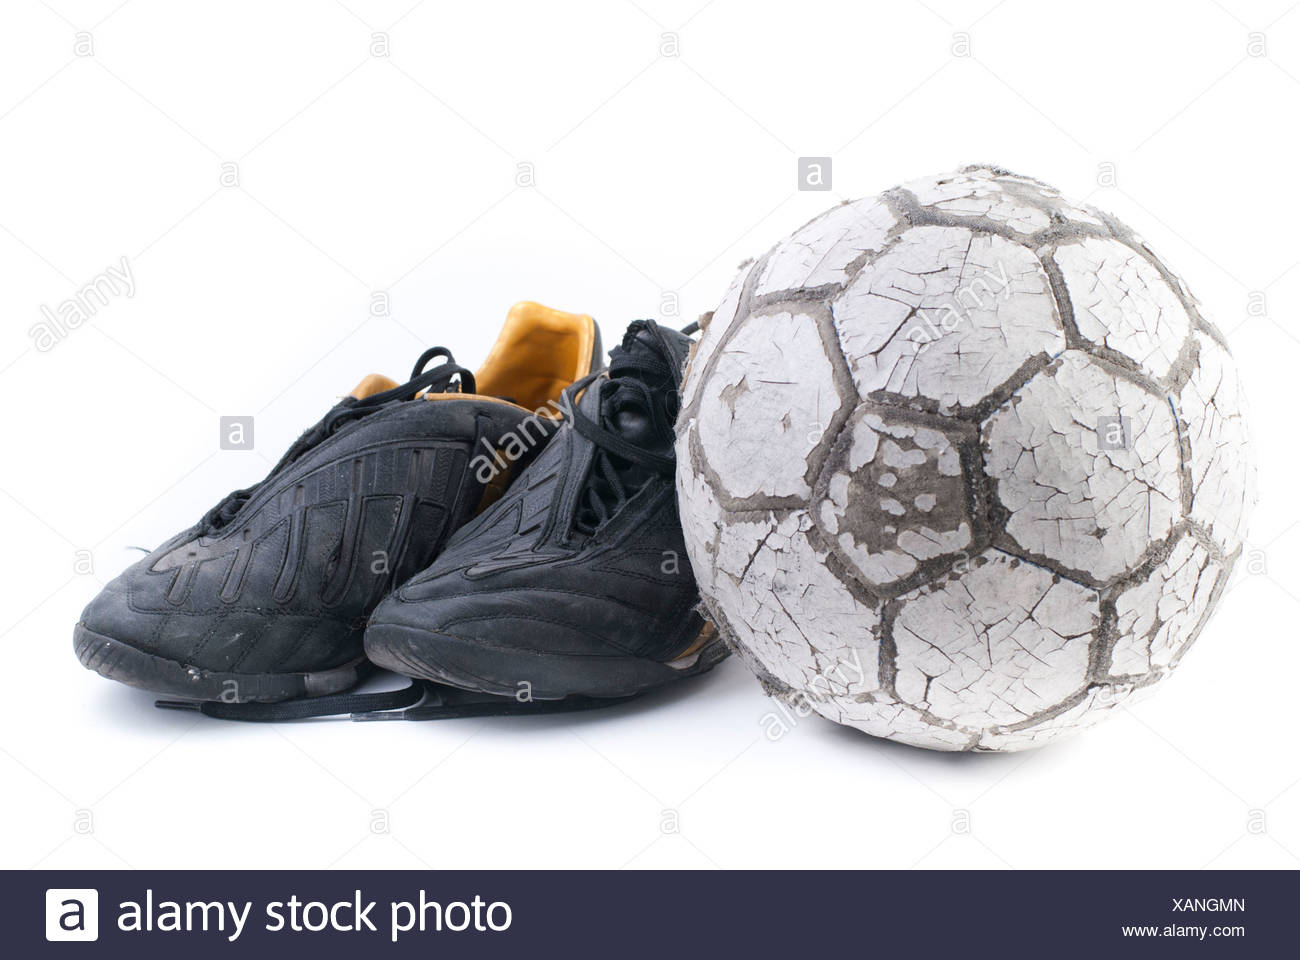 df92d393f Soccer ball with two old black soccer shoes Stock Photo: 281986565 ...